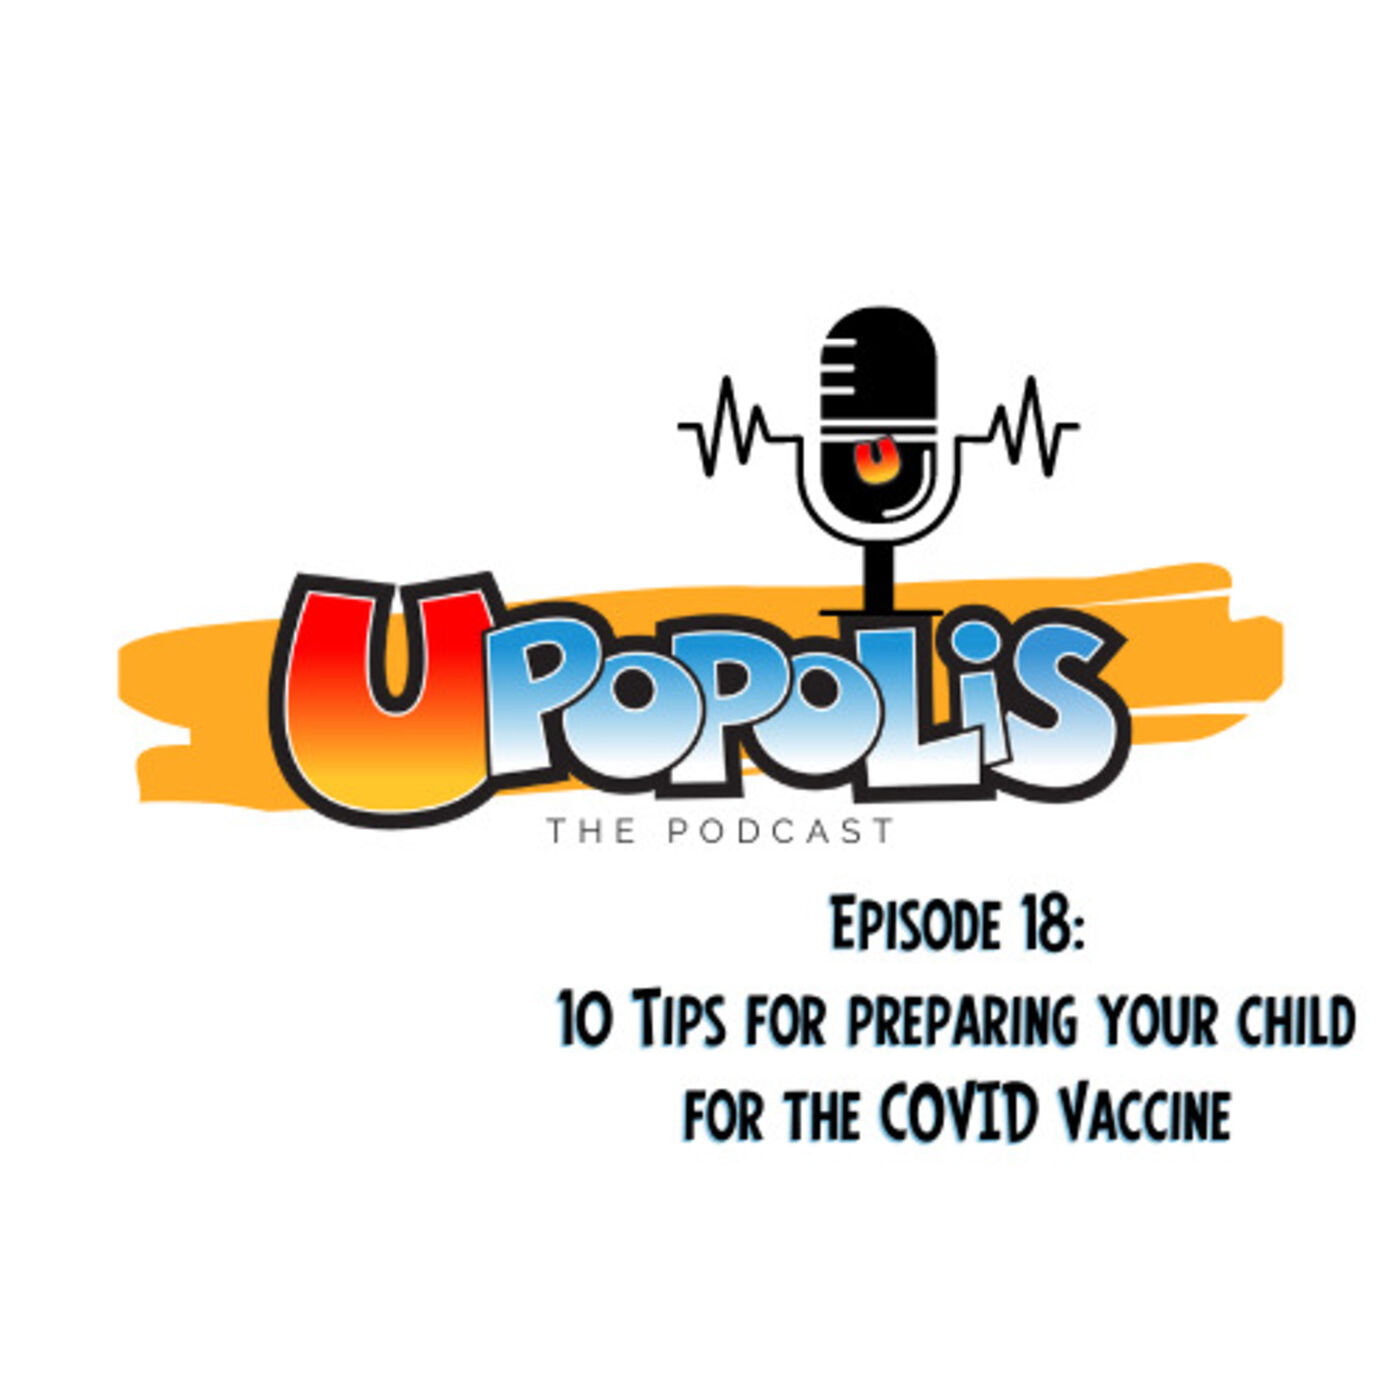 Episode 18: 10 Tips for preparing your child for the COVID vaccine